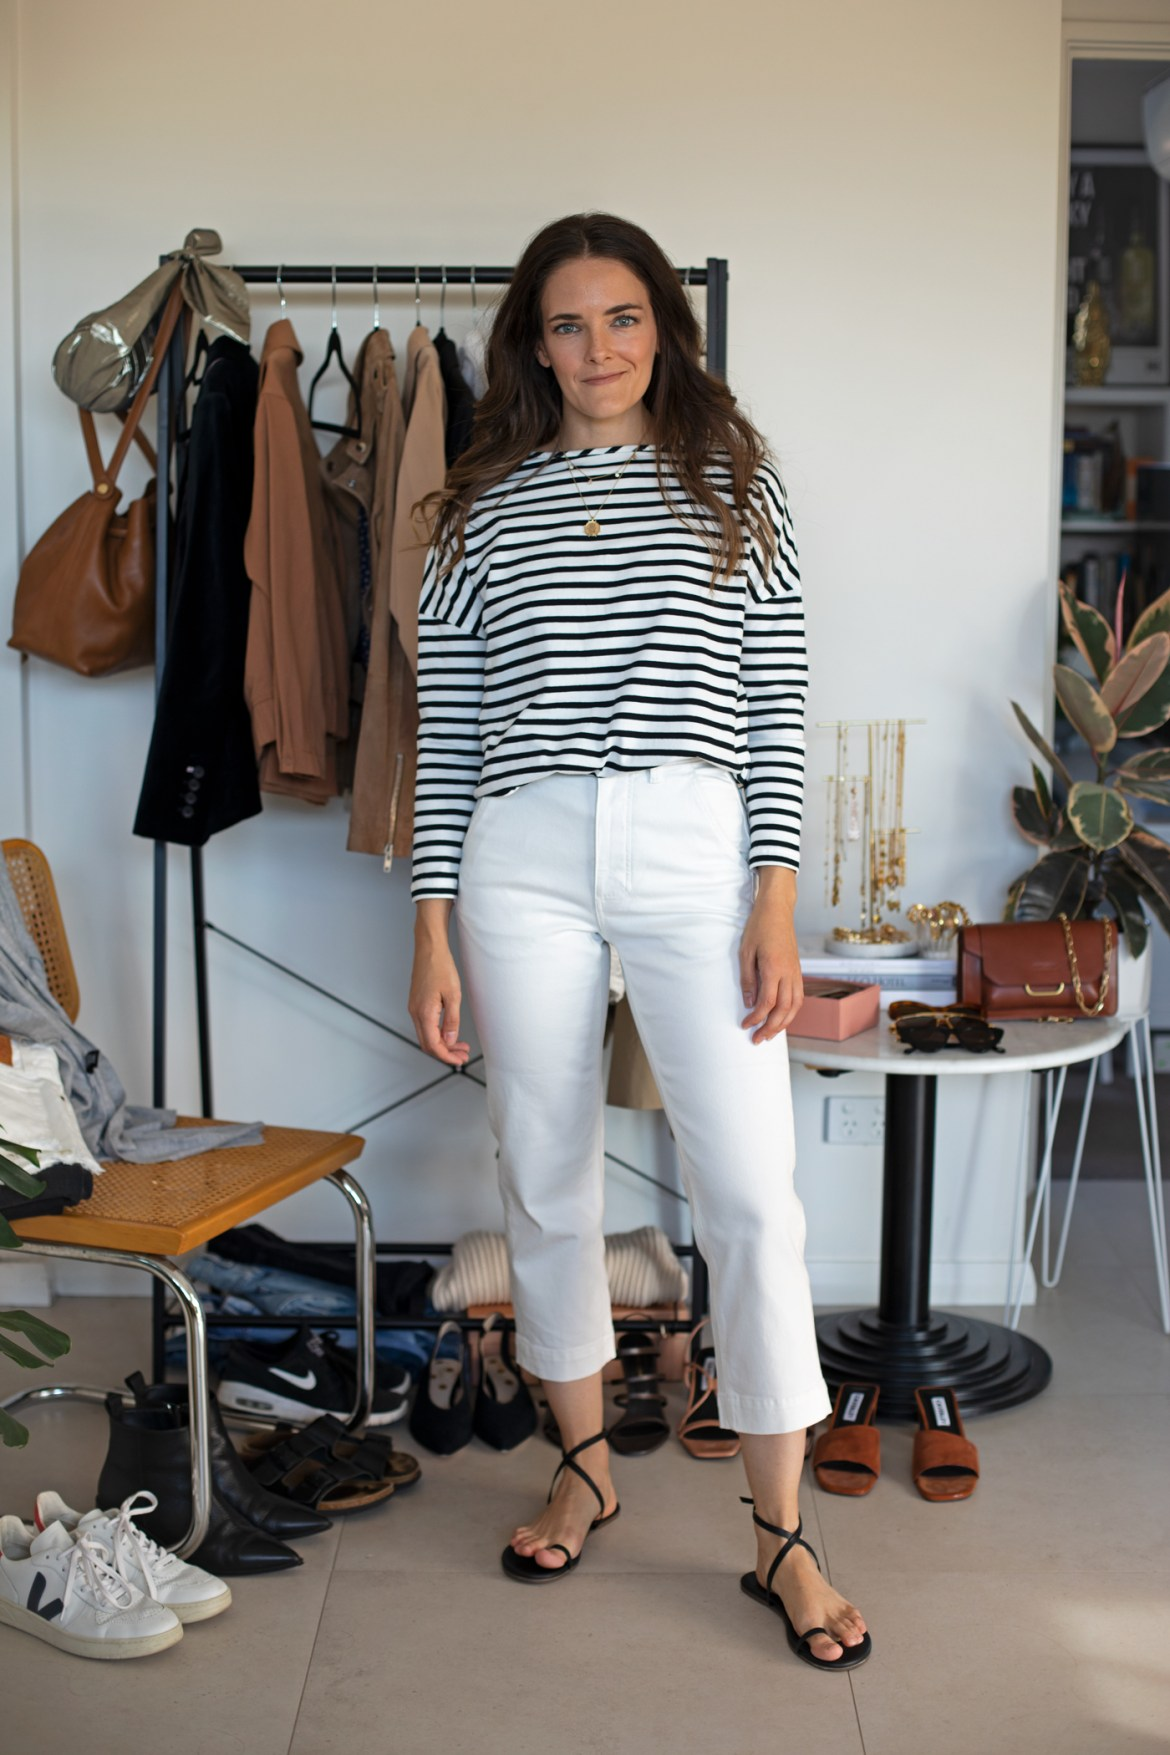 Bohemian Traders striped boyfriend tee and Everlane white crop pants outfit from the 7 ways 7 days at home outfit ideas for a week at home in ISO styling video on IGTV @inspiringwit